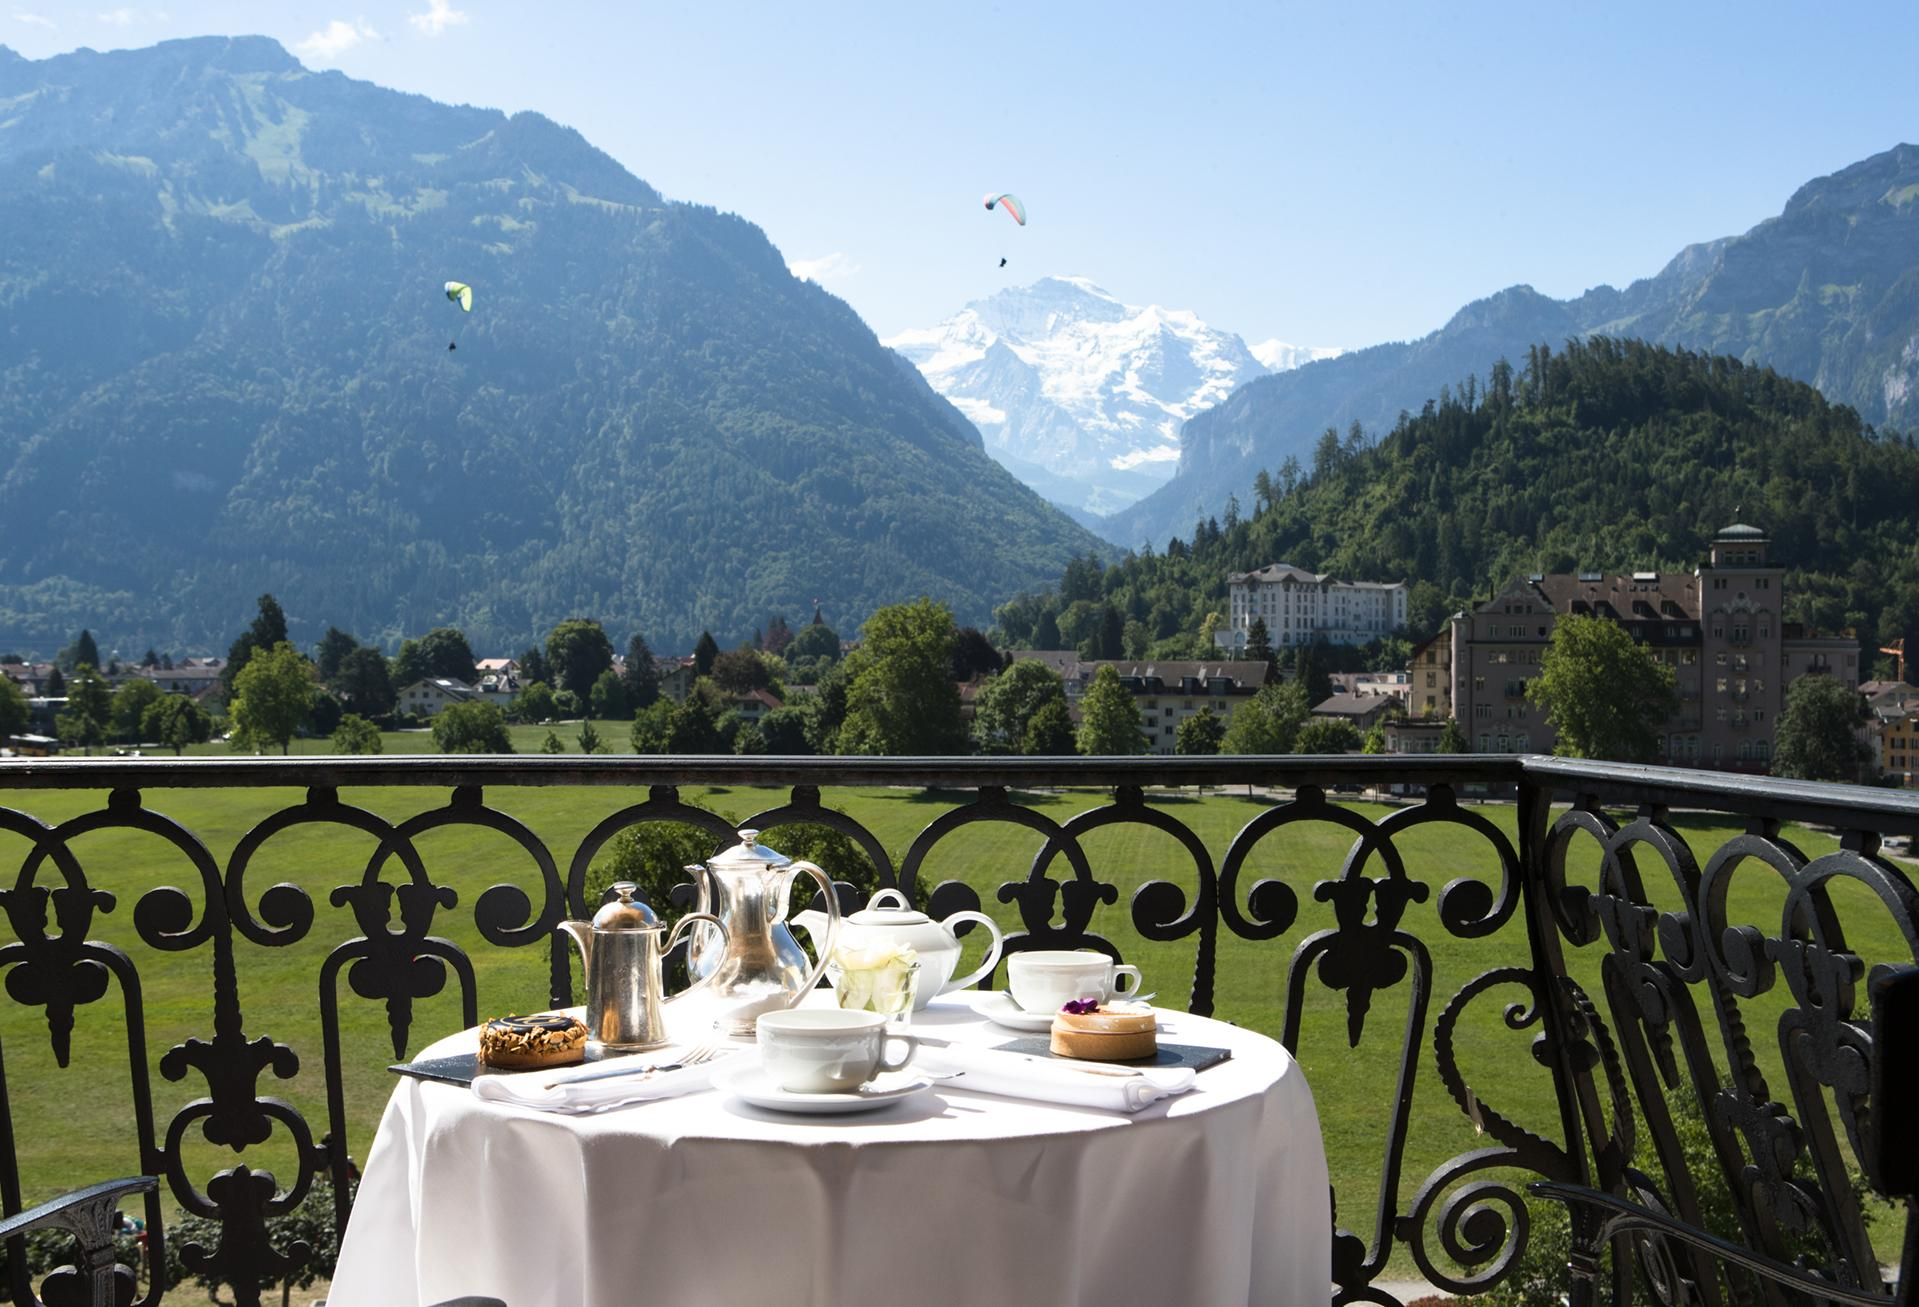 Enjoy your Breakfast on the Balcony of your room while admiring the view